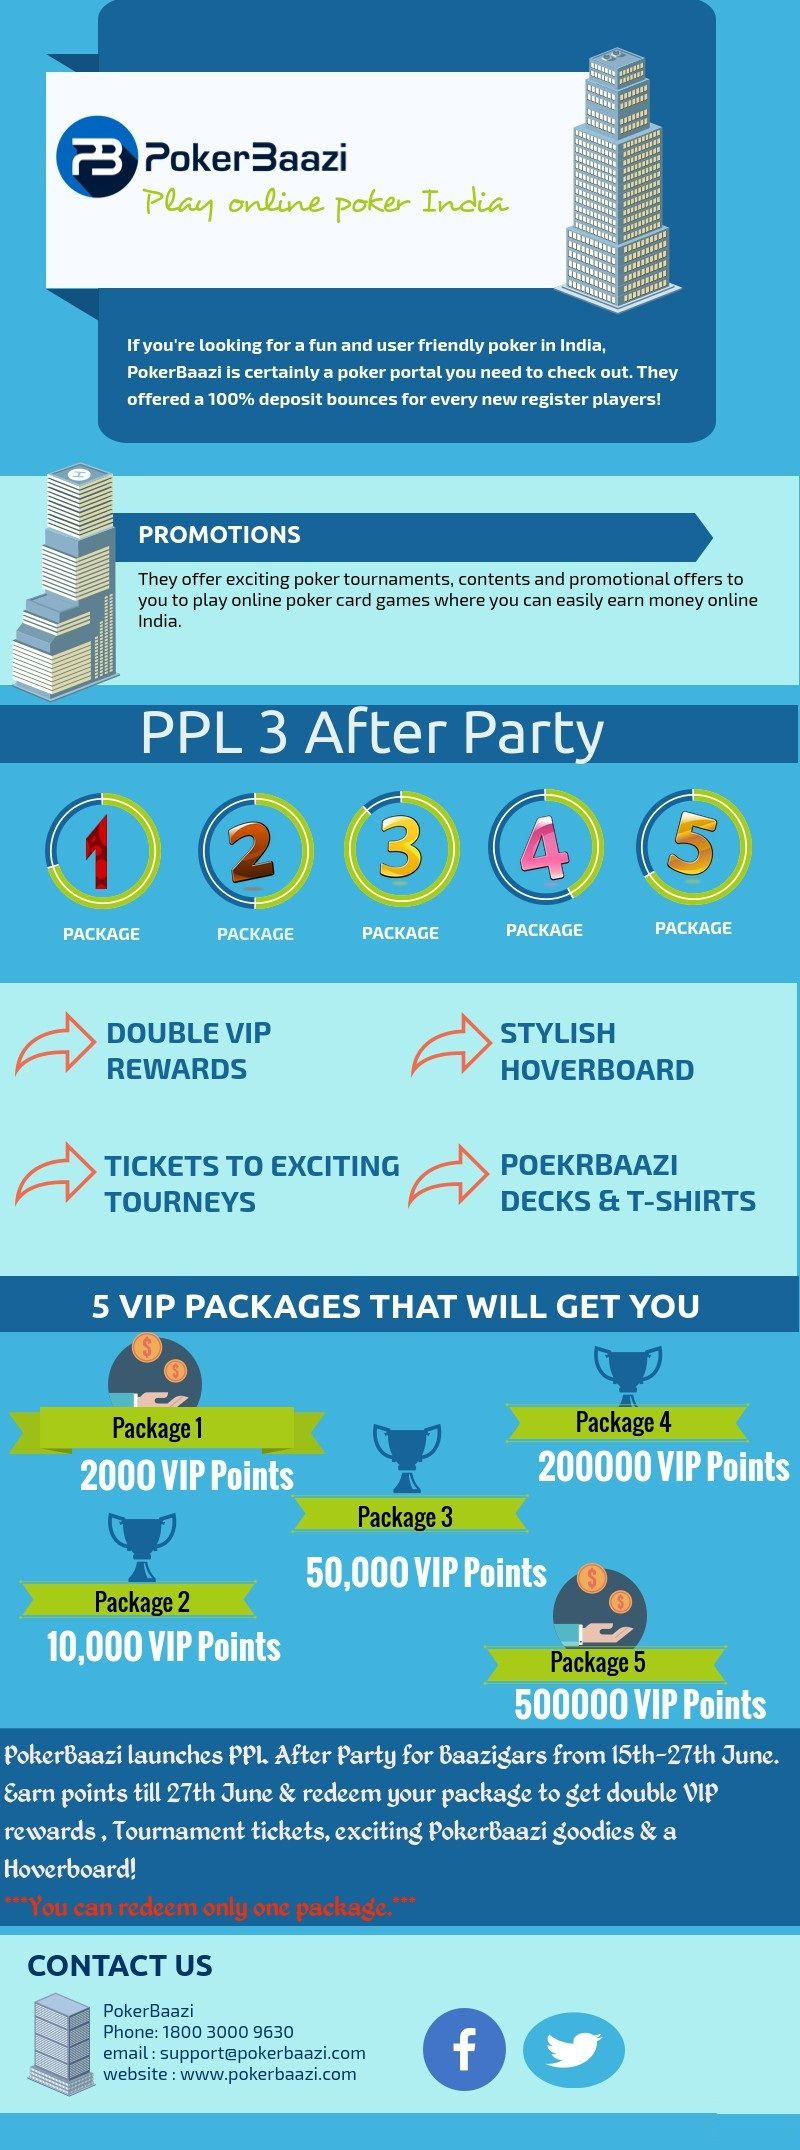 After a huge success at the PPL, PokerBaazi launches PPL After Party for Baazigars from 15th-27th June. Earn points till 27th June & redeem your package to get double VIP rewards , Tournament tickets, exciting PokerBaazi goodies & a Hoverboard! There will be 5 packages. You can redeem only one package.